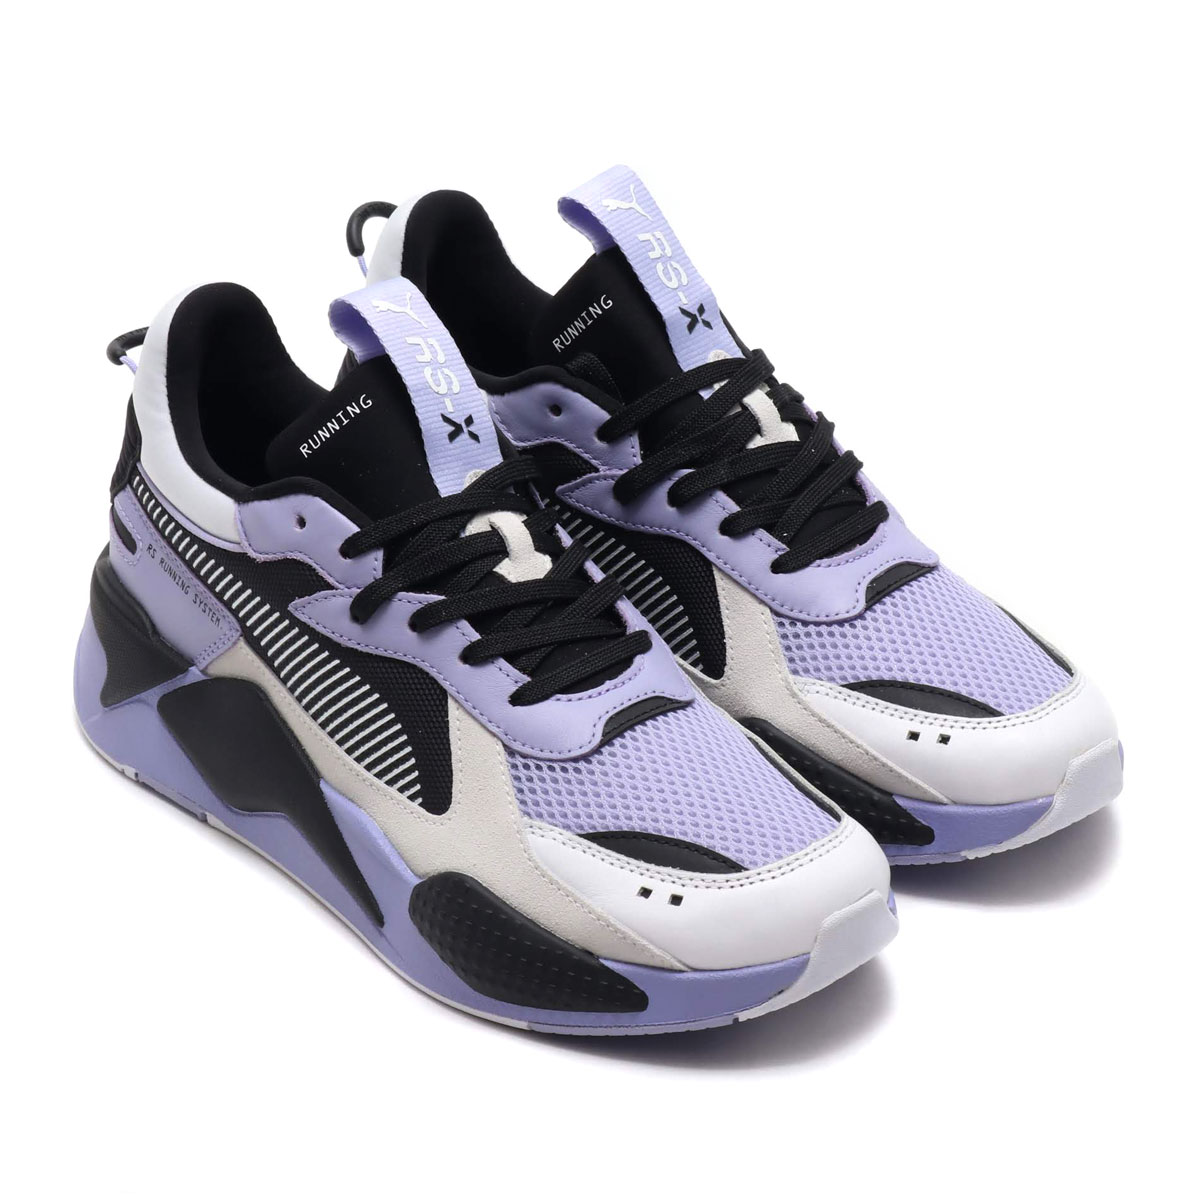 PUMA RS X REINVENTION (Puma RS X re invention) SWEET LAVENDER 19SP I